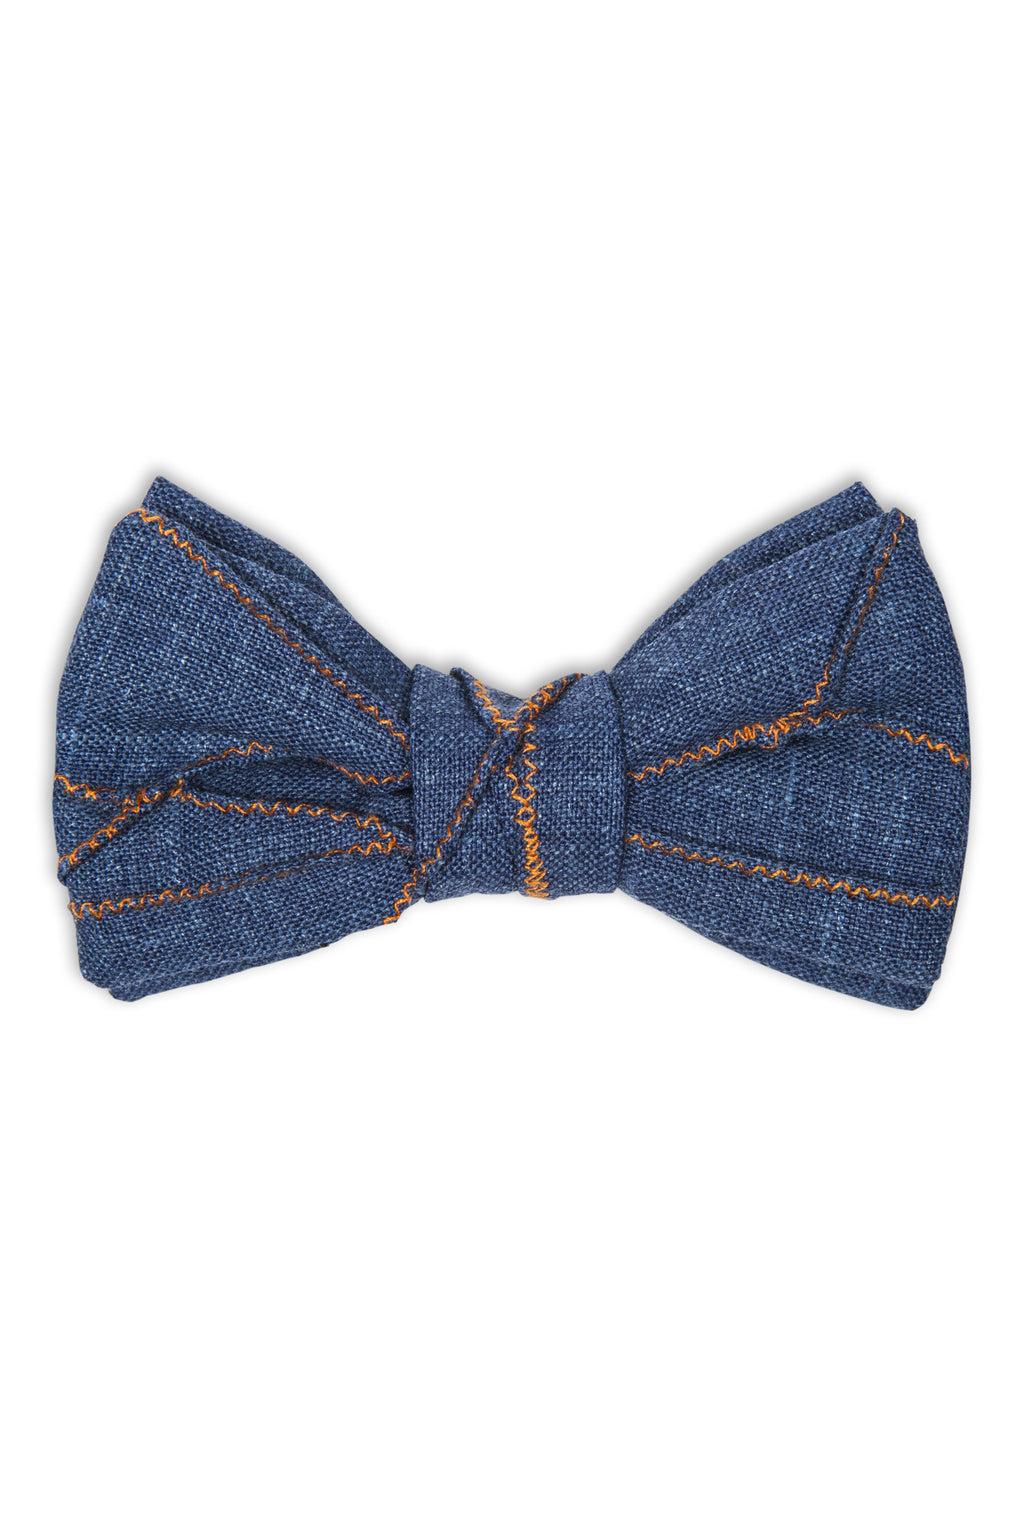 Handmade grey wool bow tie with apparent stitching - Noeud papillon en laine avec coutures inversées apparentes